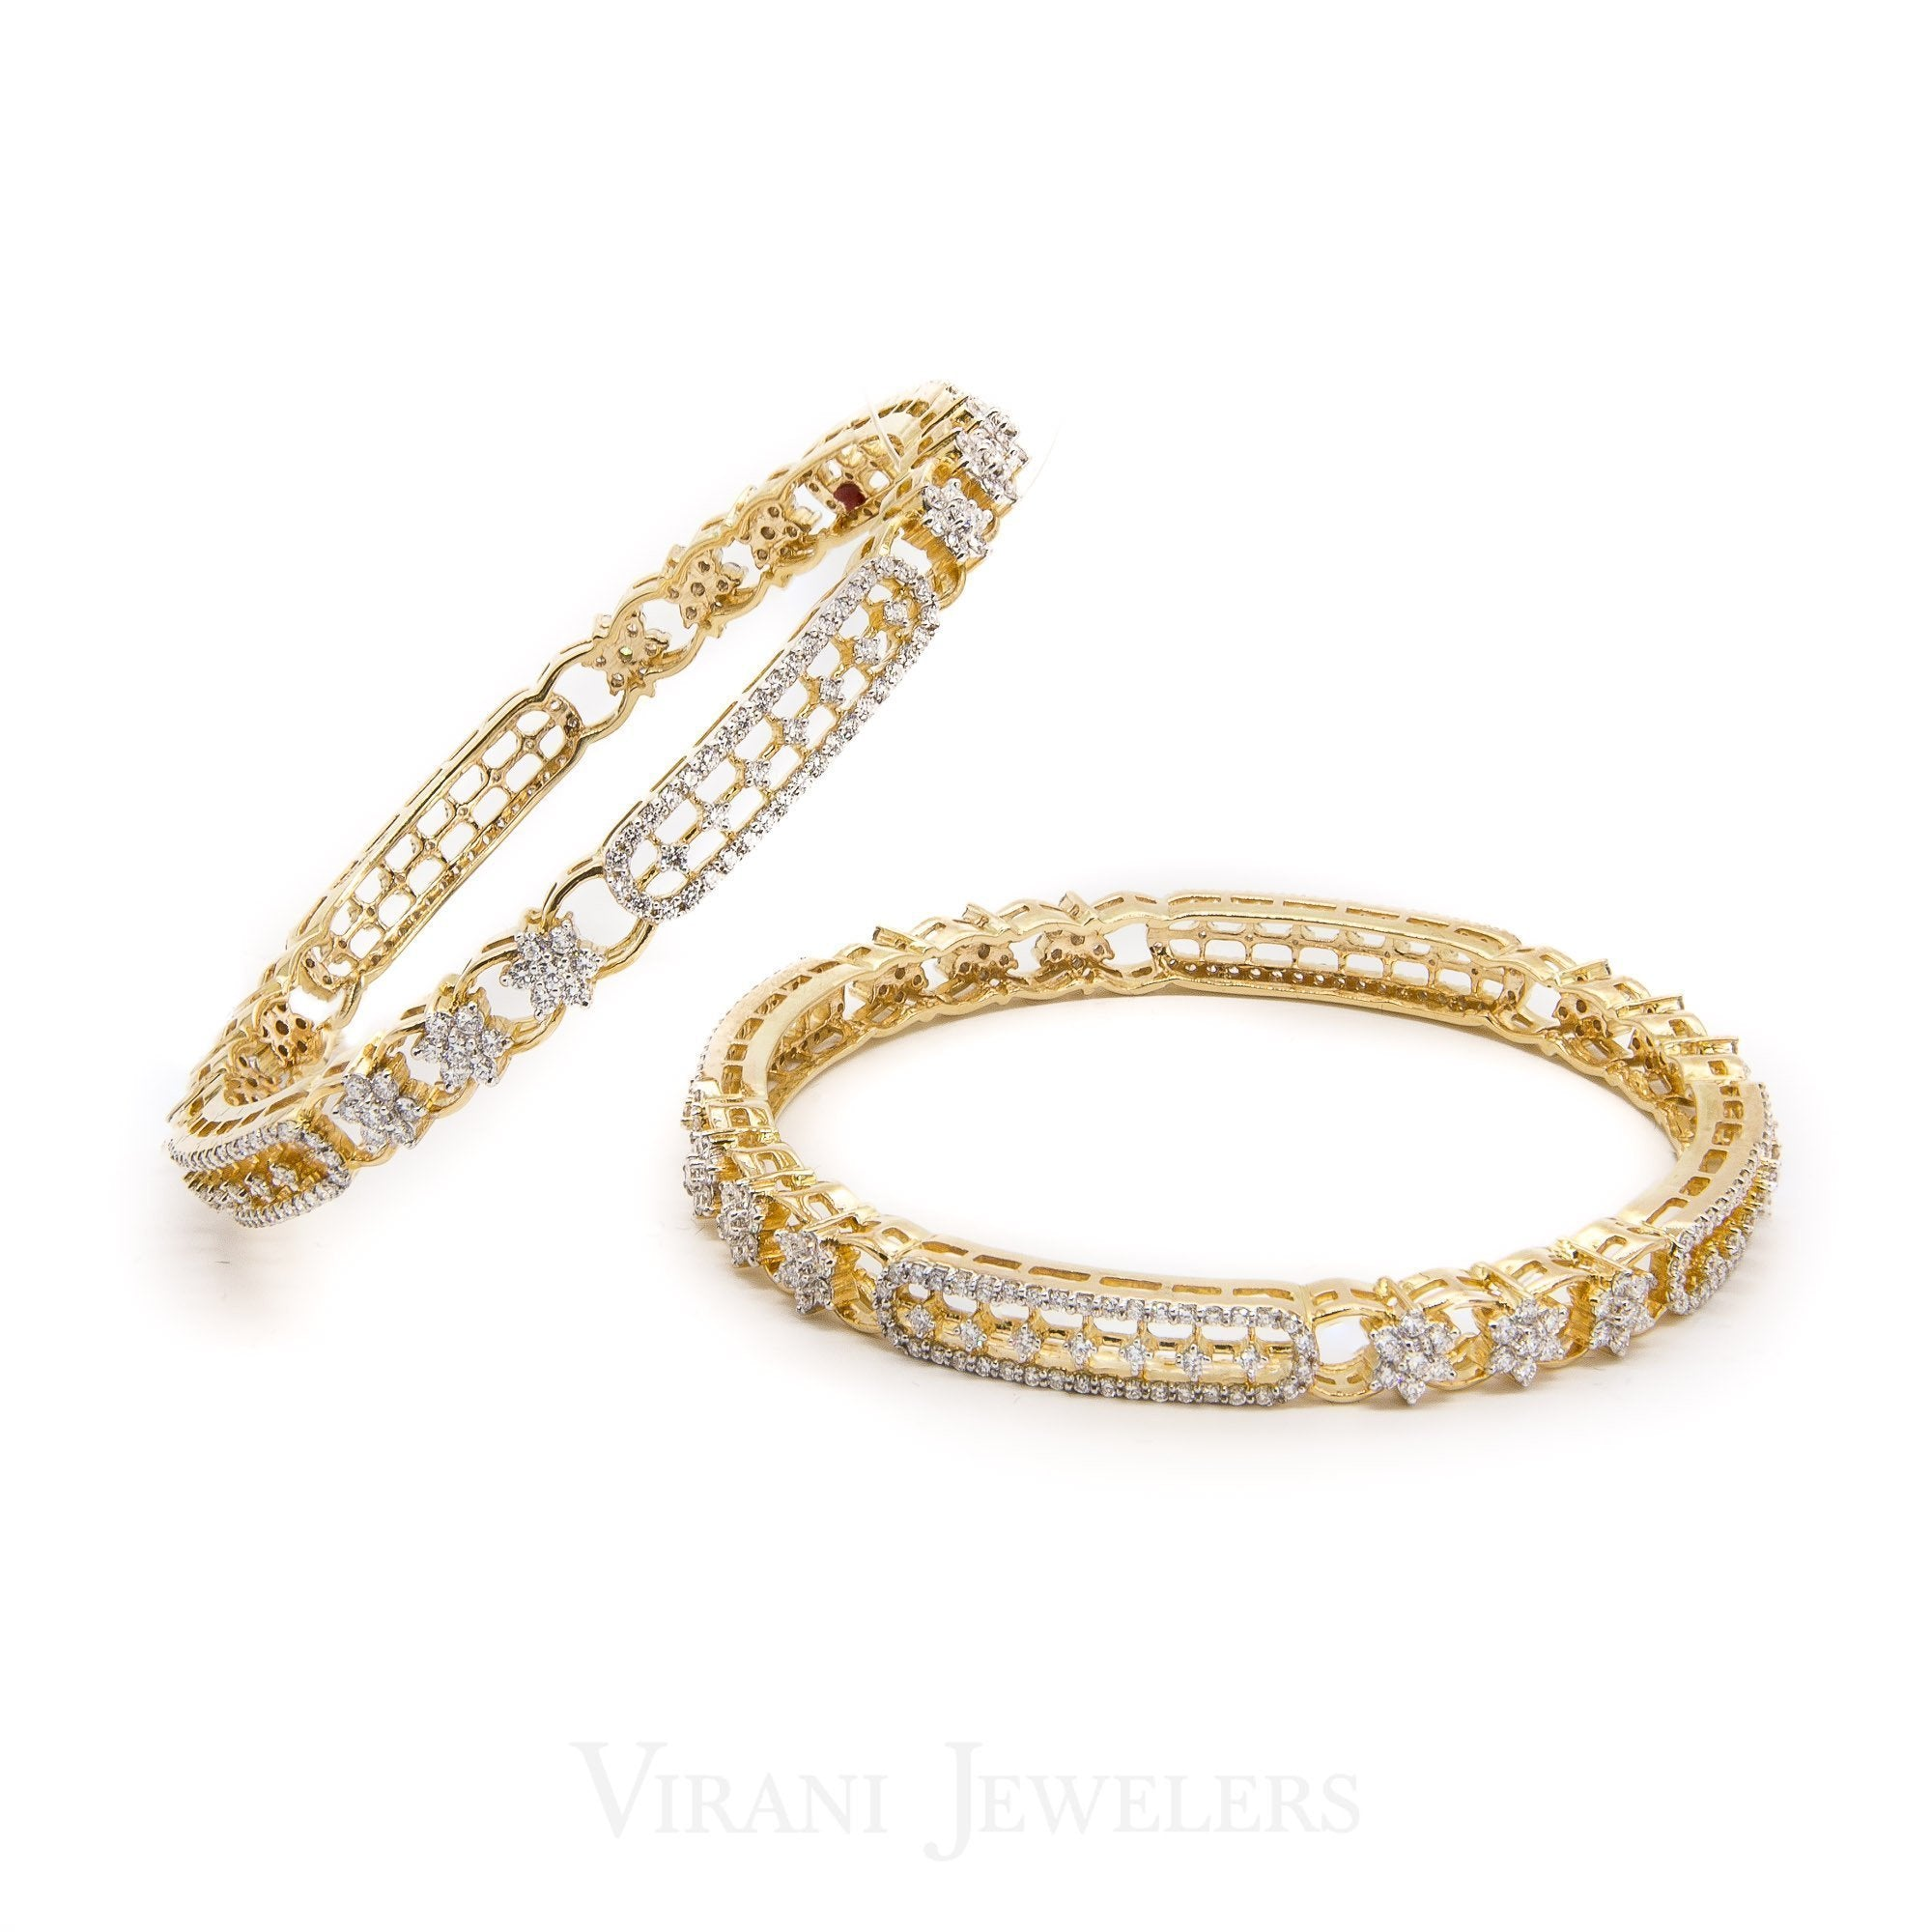 6CT Diamond Bangle Set, in 18K Yellow Gold, W/ Floral Hollow Link Accents